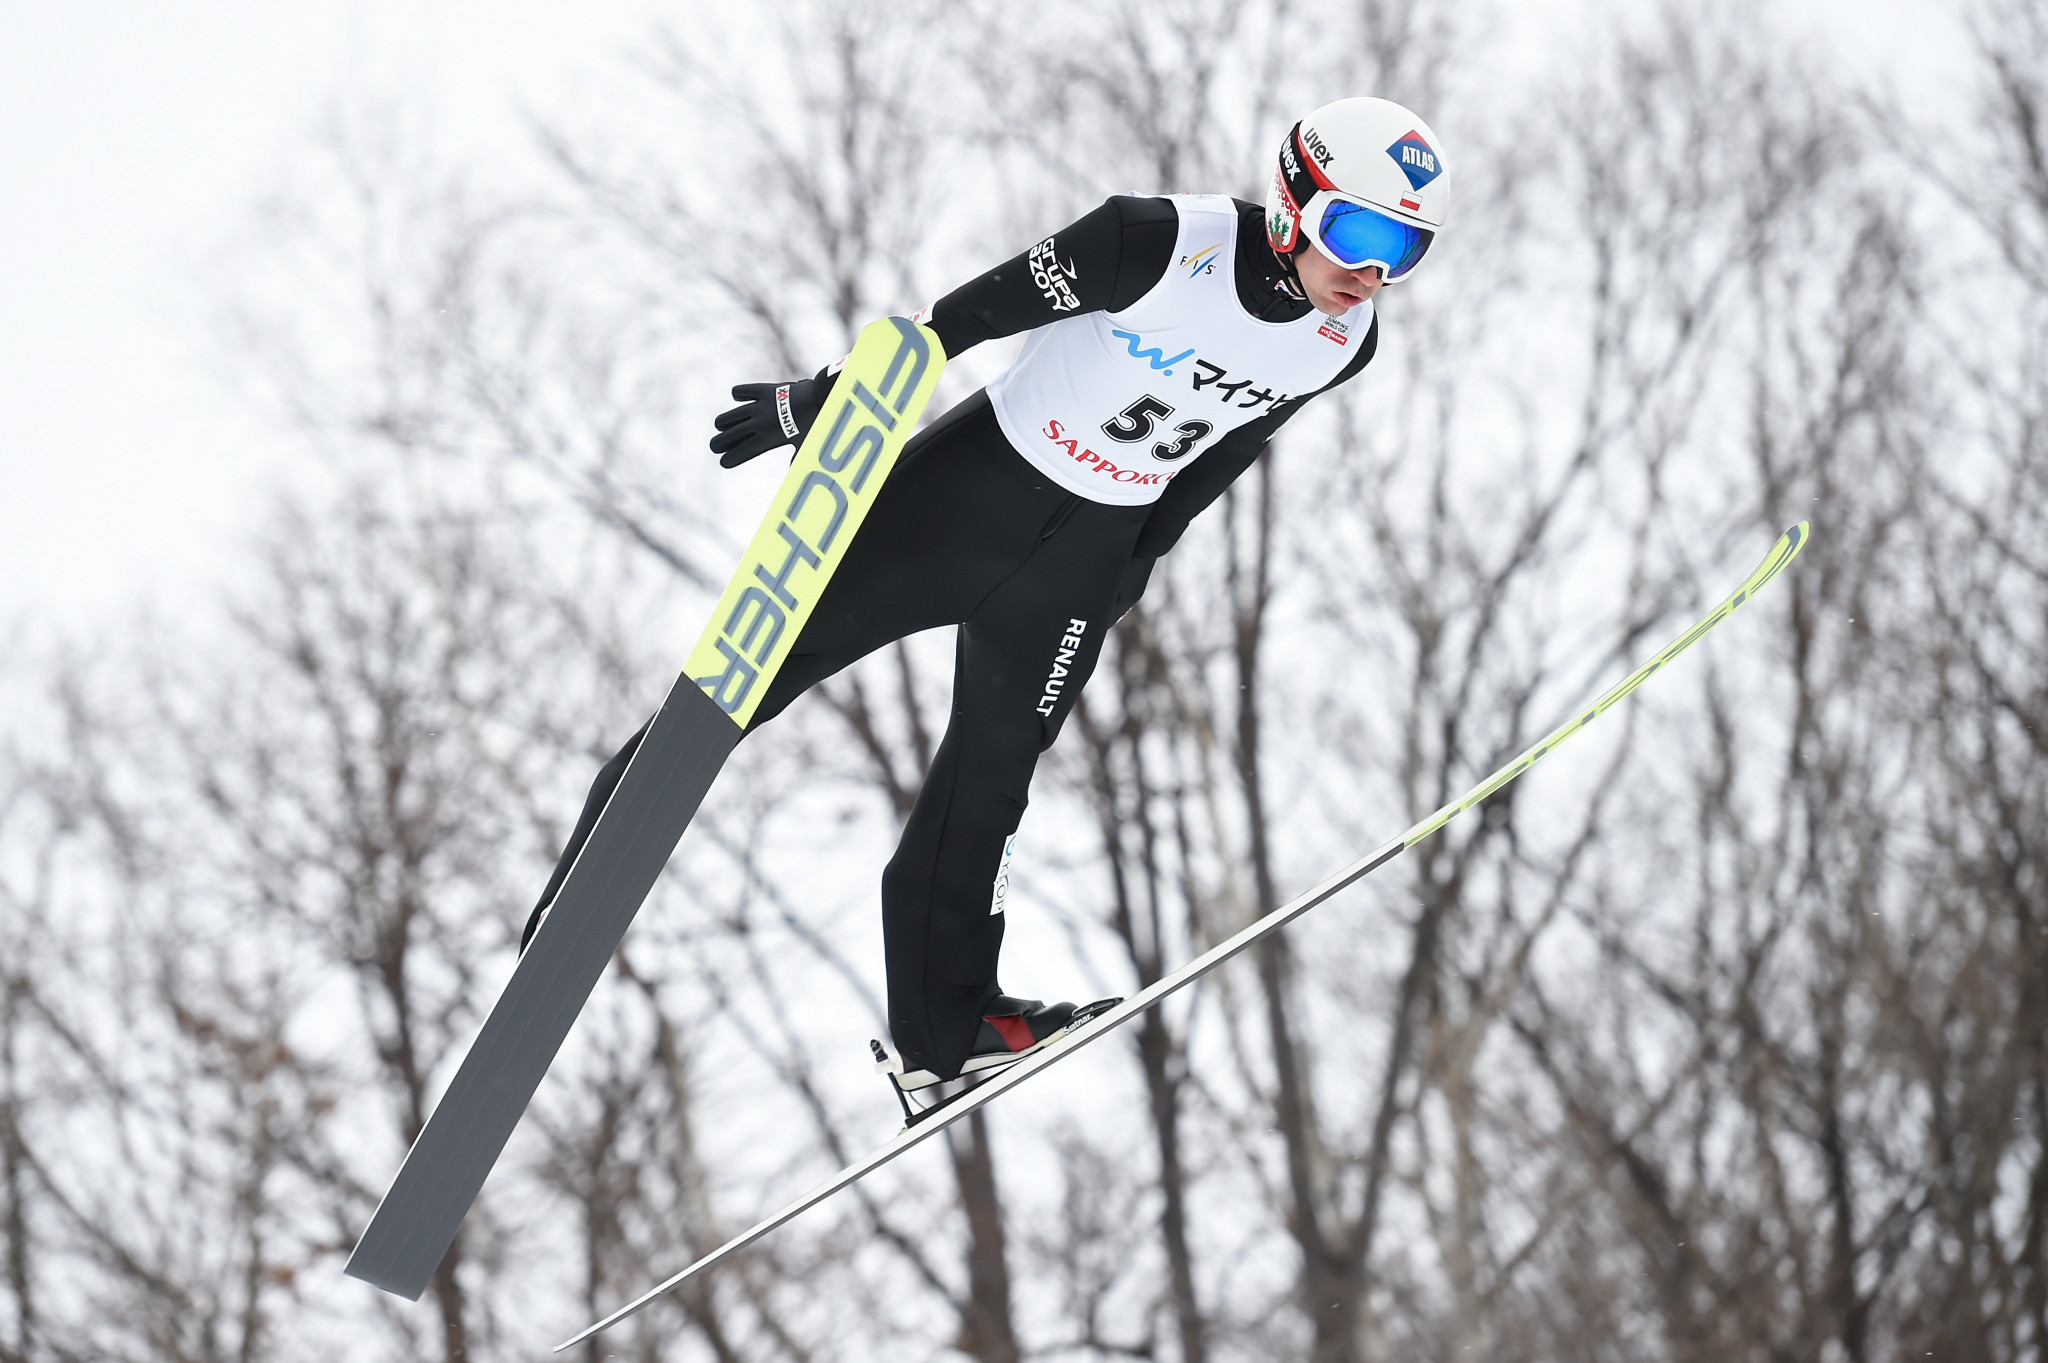 Stoch tops qualifying at season-opening FIS Ski Jumping World Cup leg in Wisla